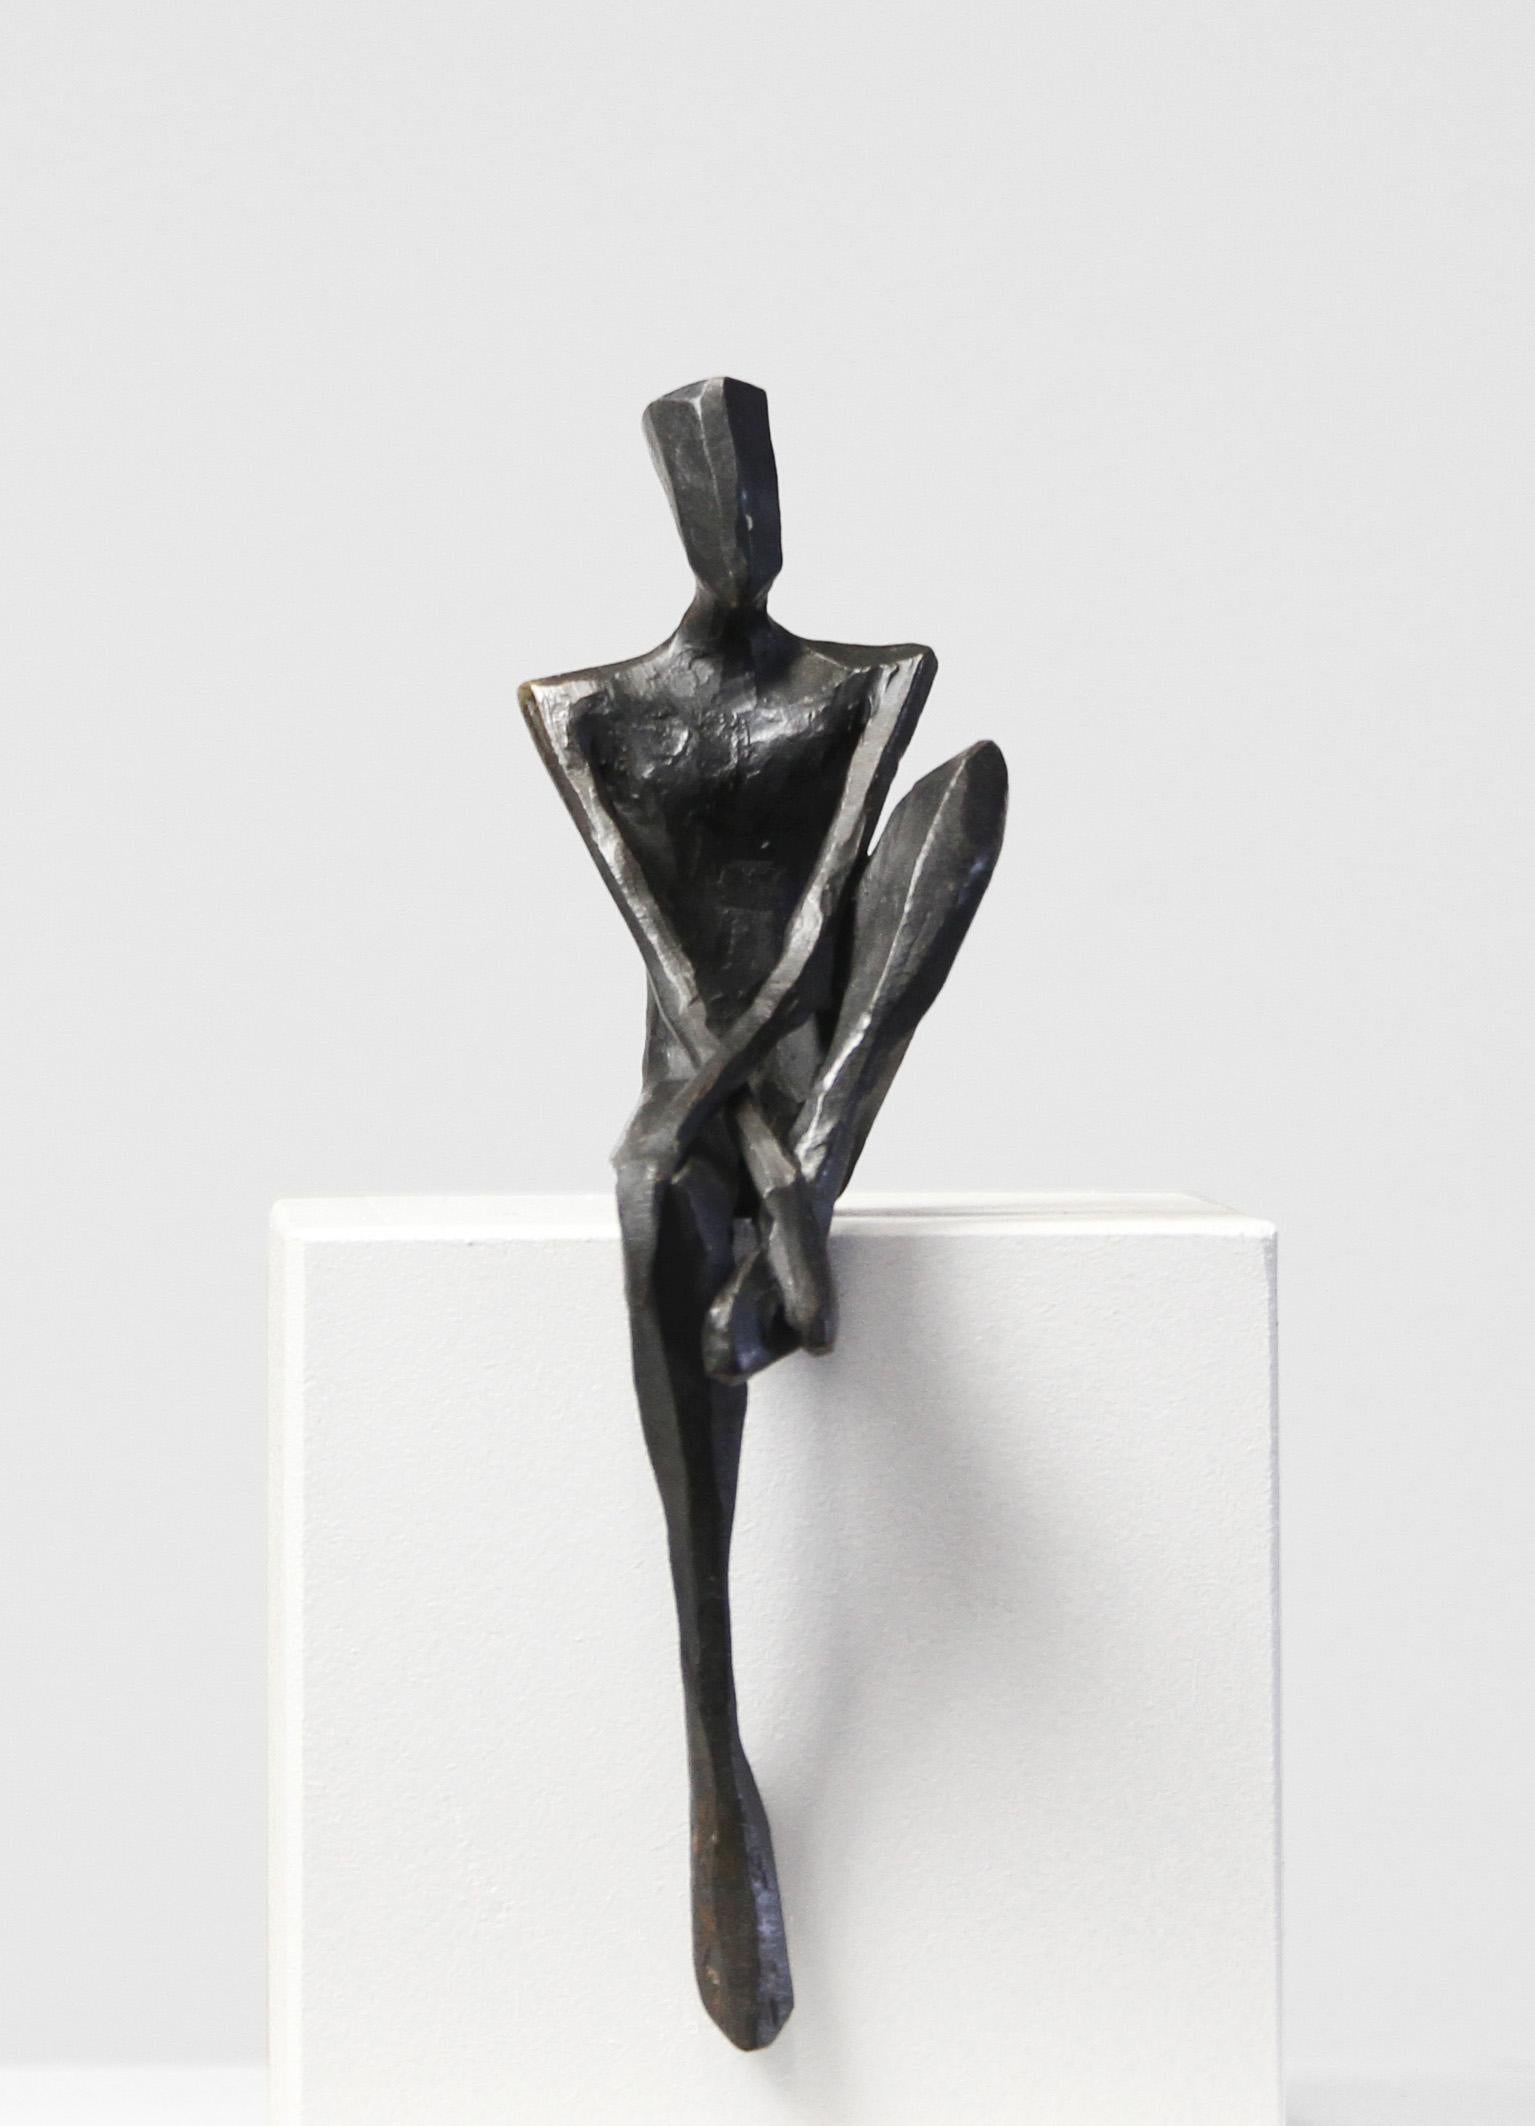 Enrico - One-of-a-kind Bronze Sculpture